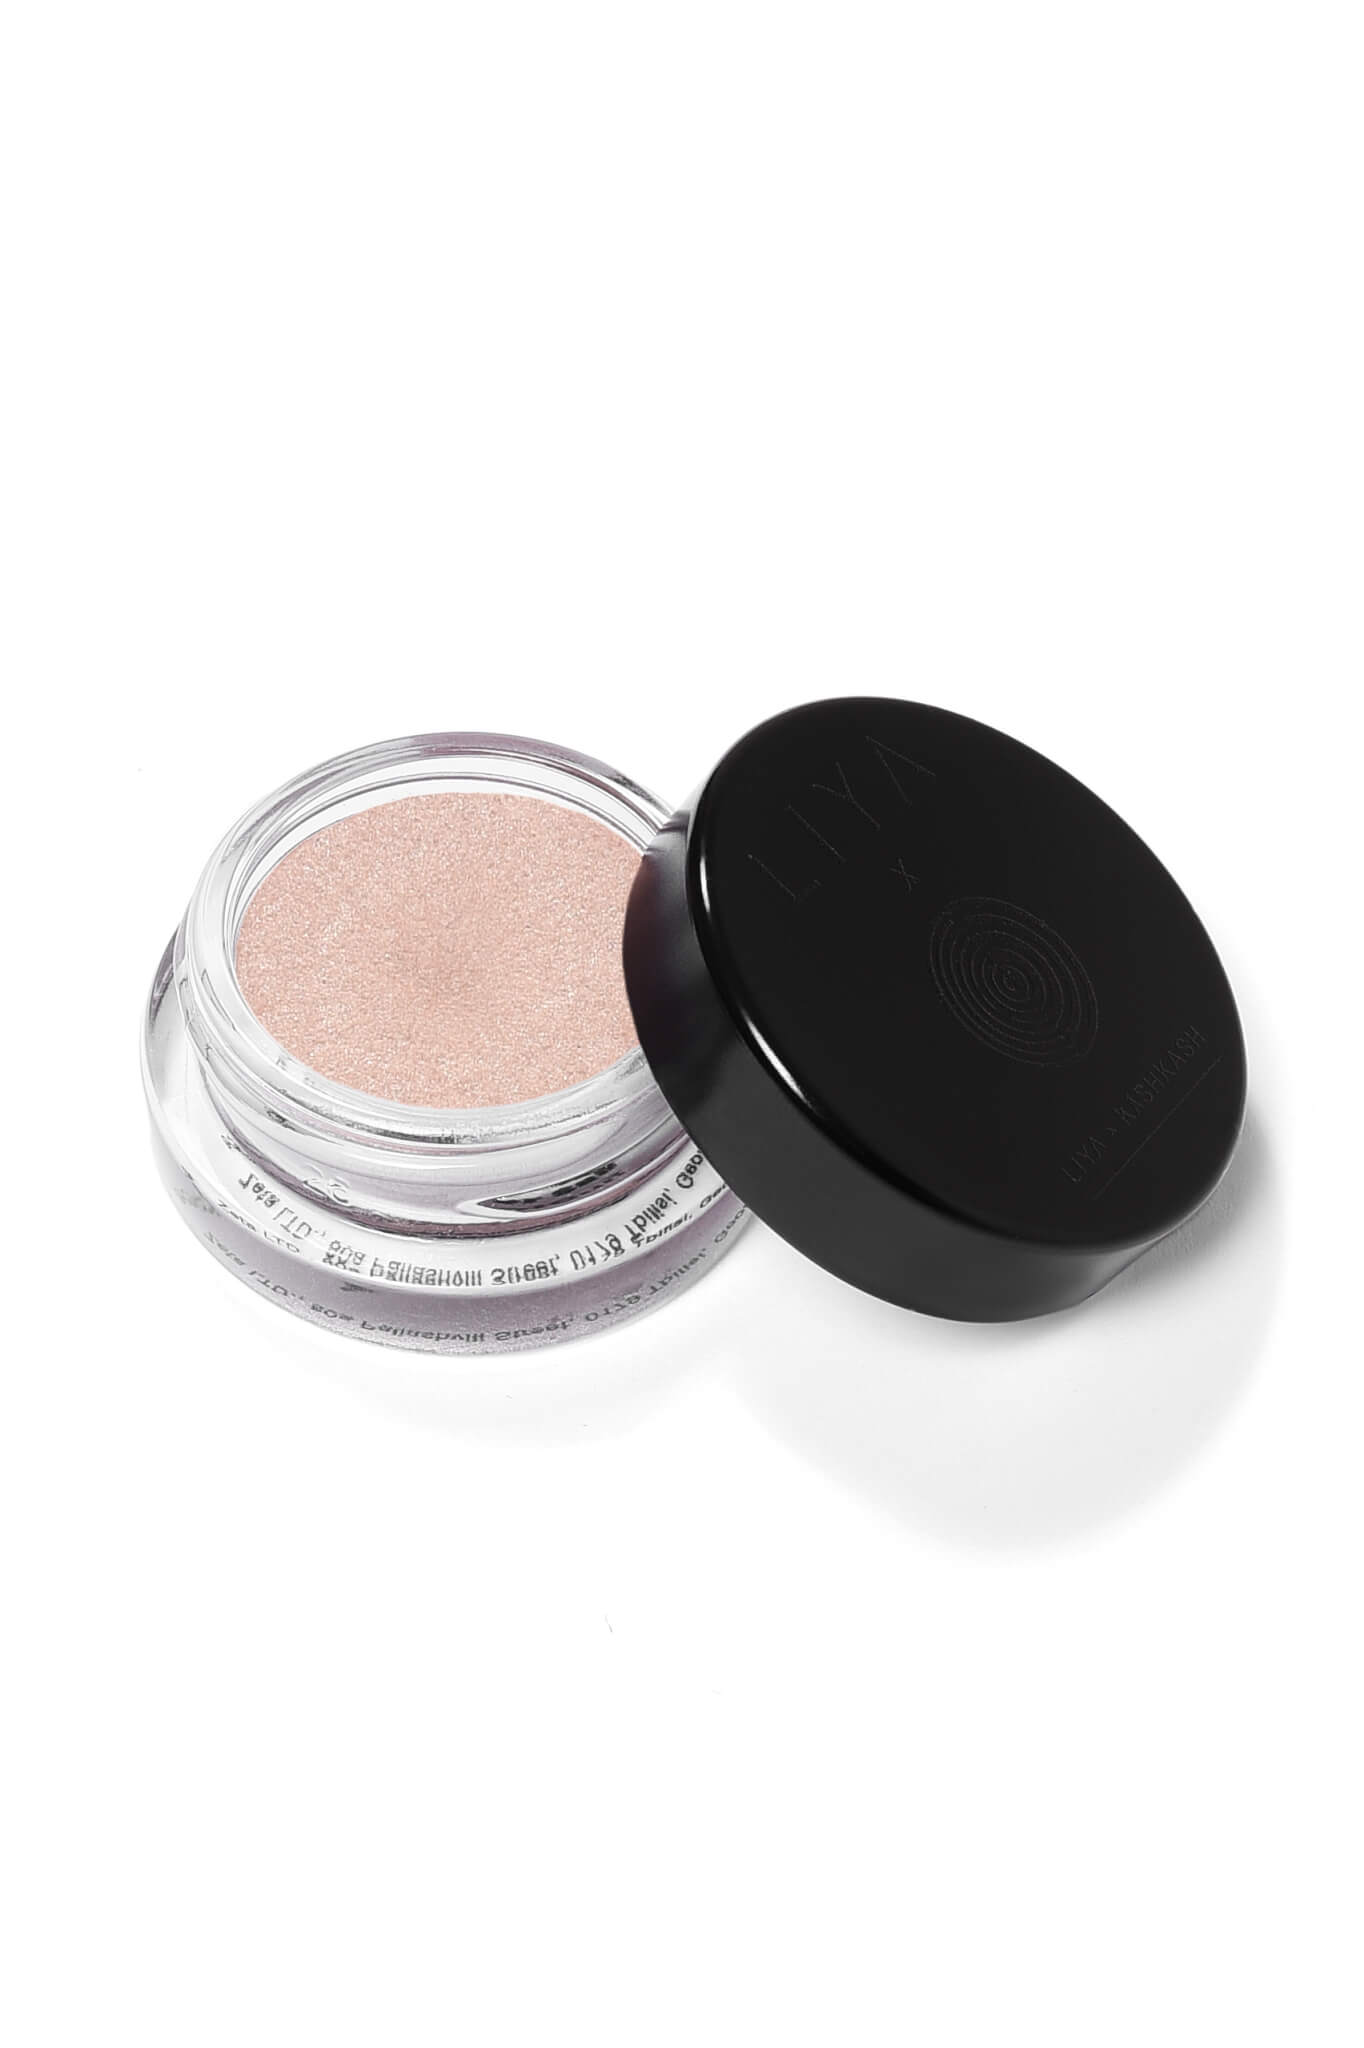 THE OTHER SUN multi-use luminizer Champagne Dawn